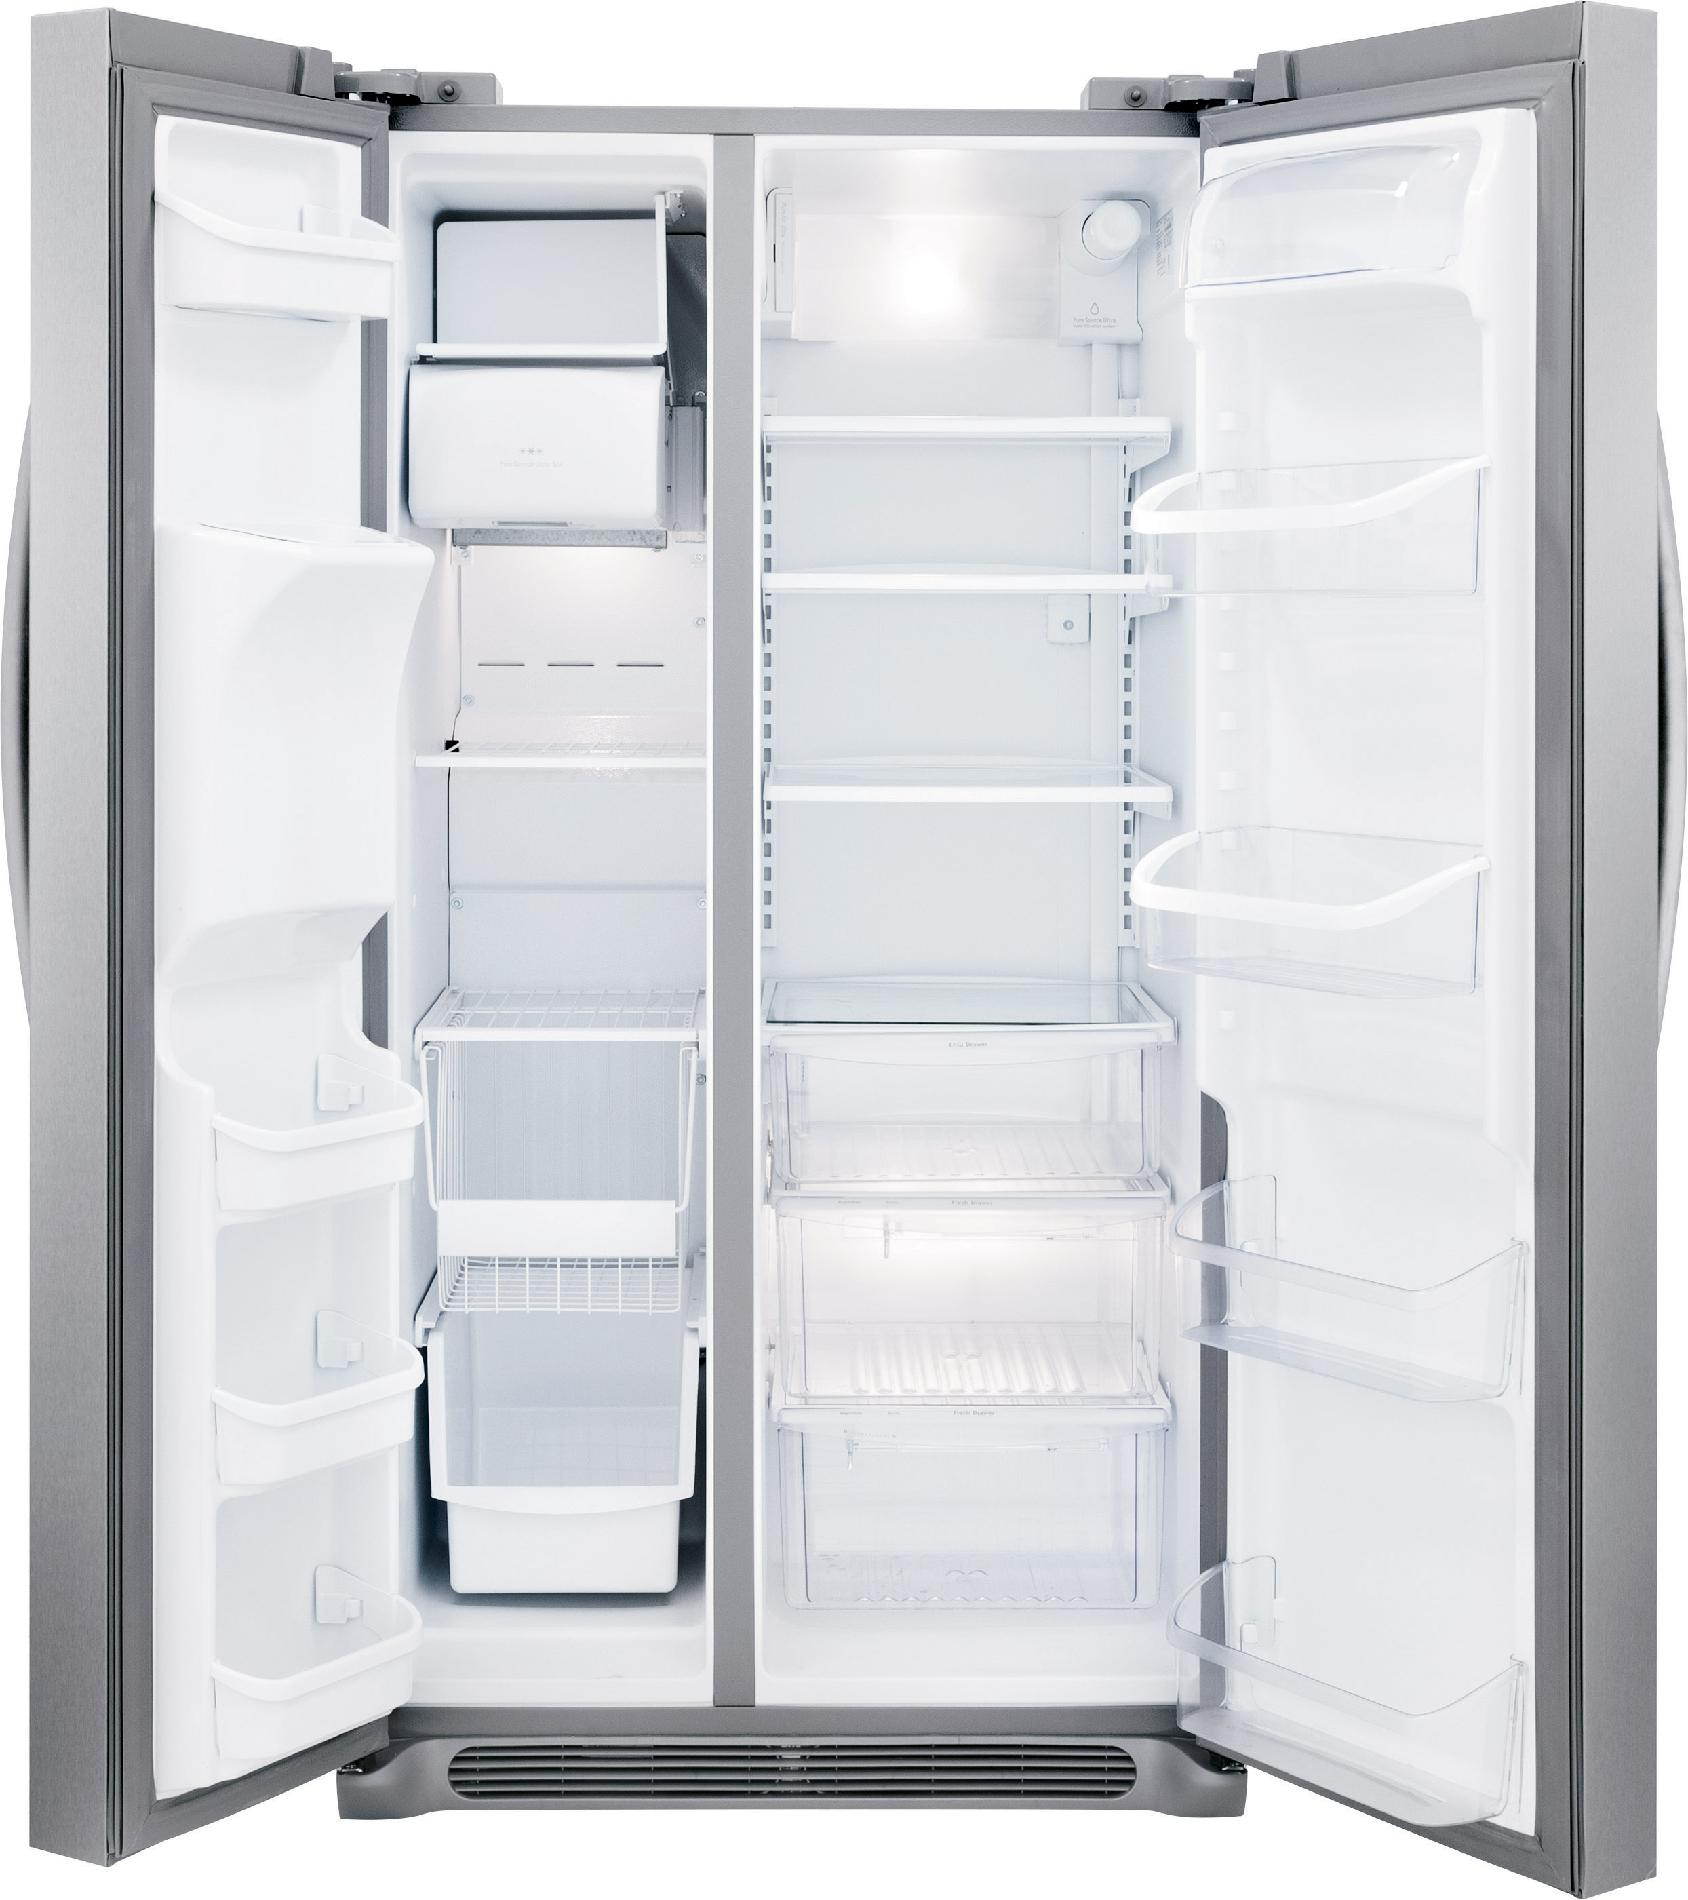 Frigidaire Gallery FGHS2631PF 25.6 cu. ft. Gallery Side-by-Side Refrigerator - Stainless Steel